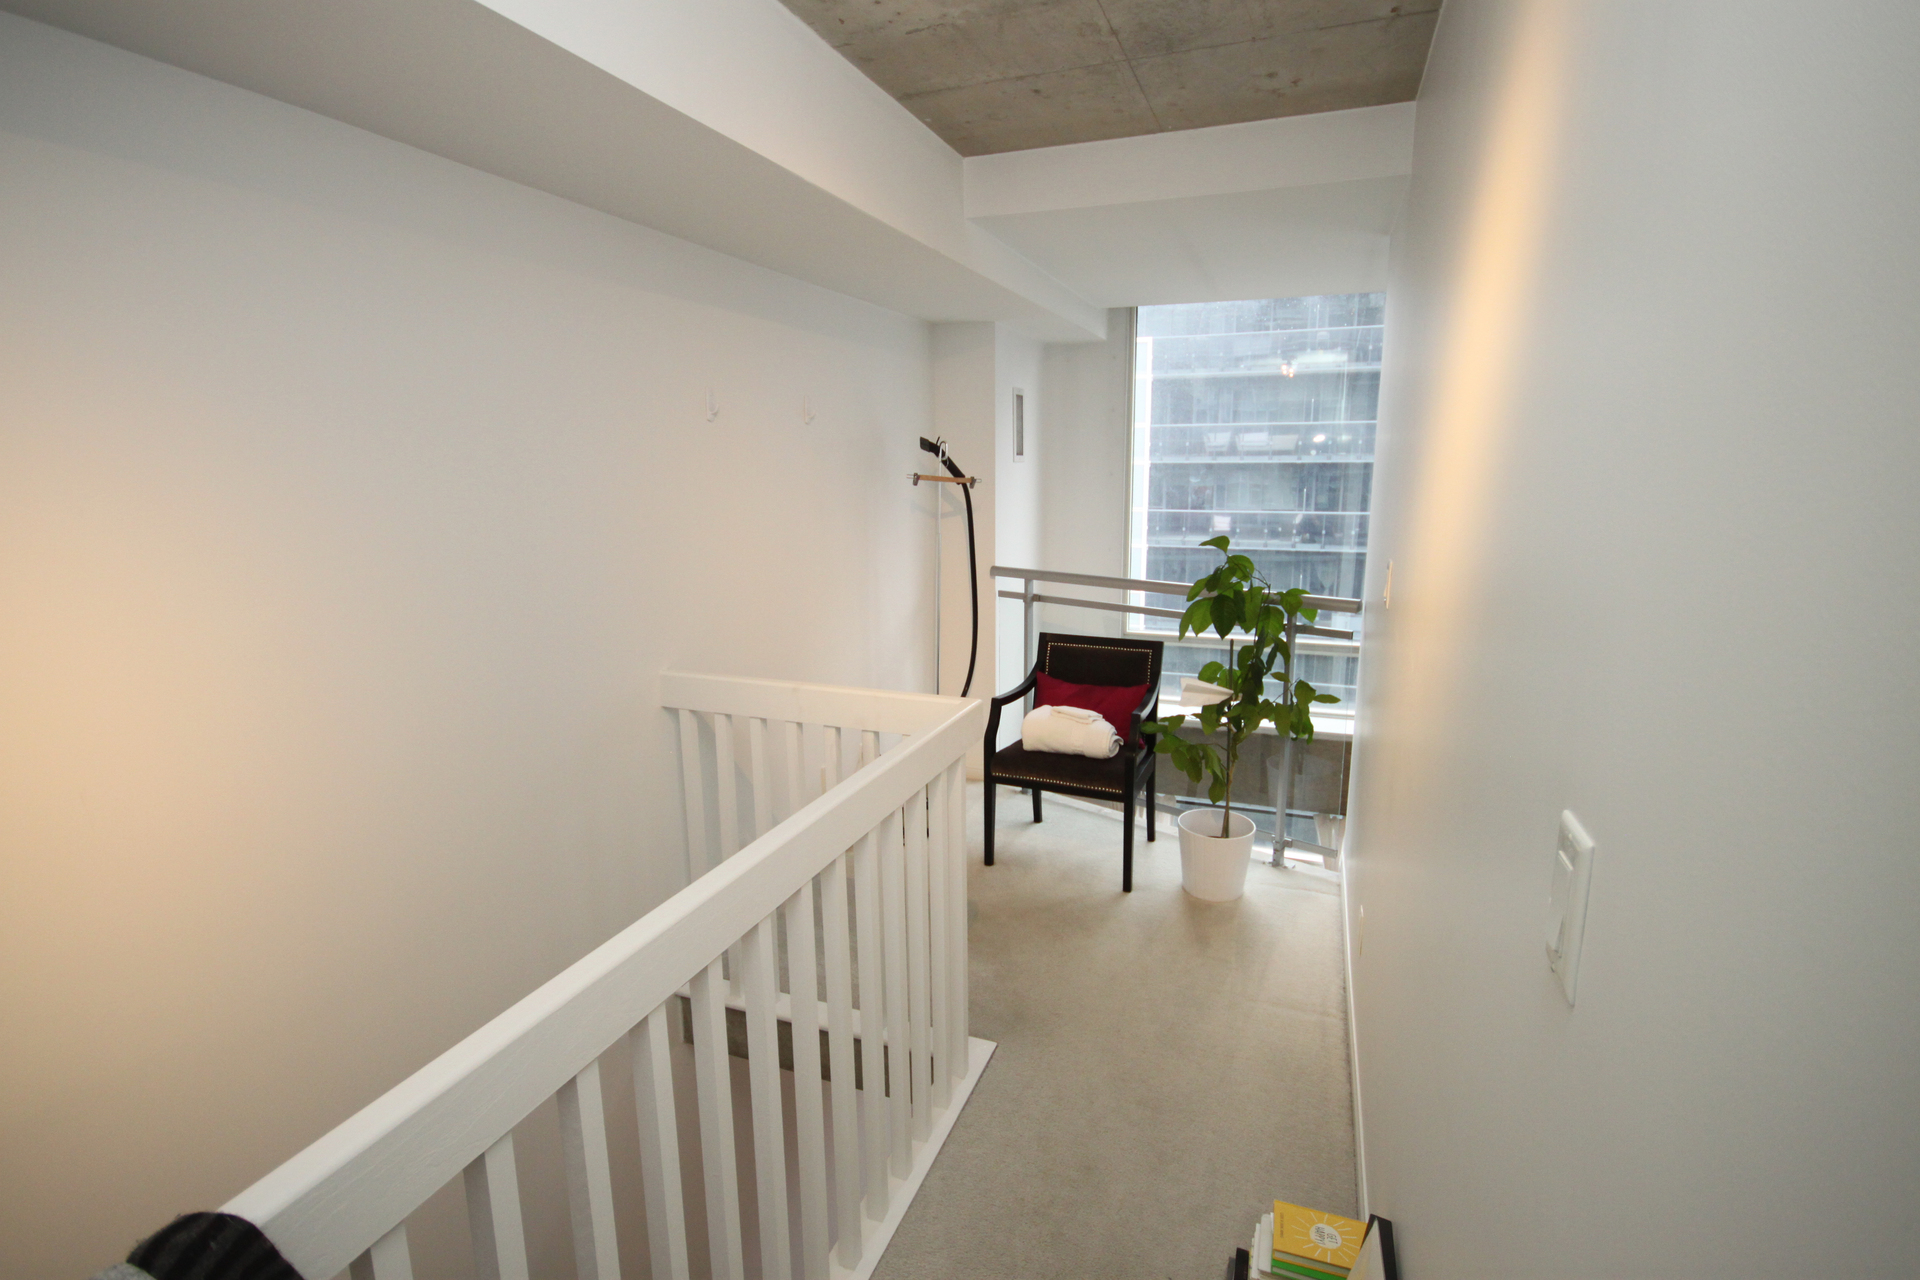 3 Piece Bathroom at 811 - 1029 King Street W, Niagara, Toronto